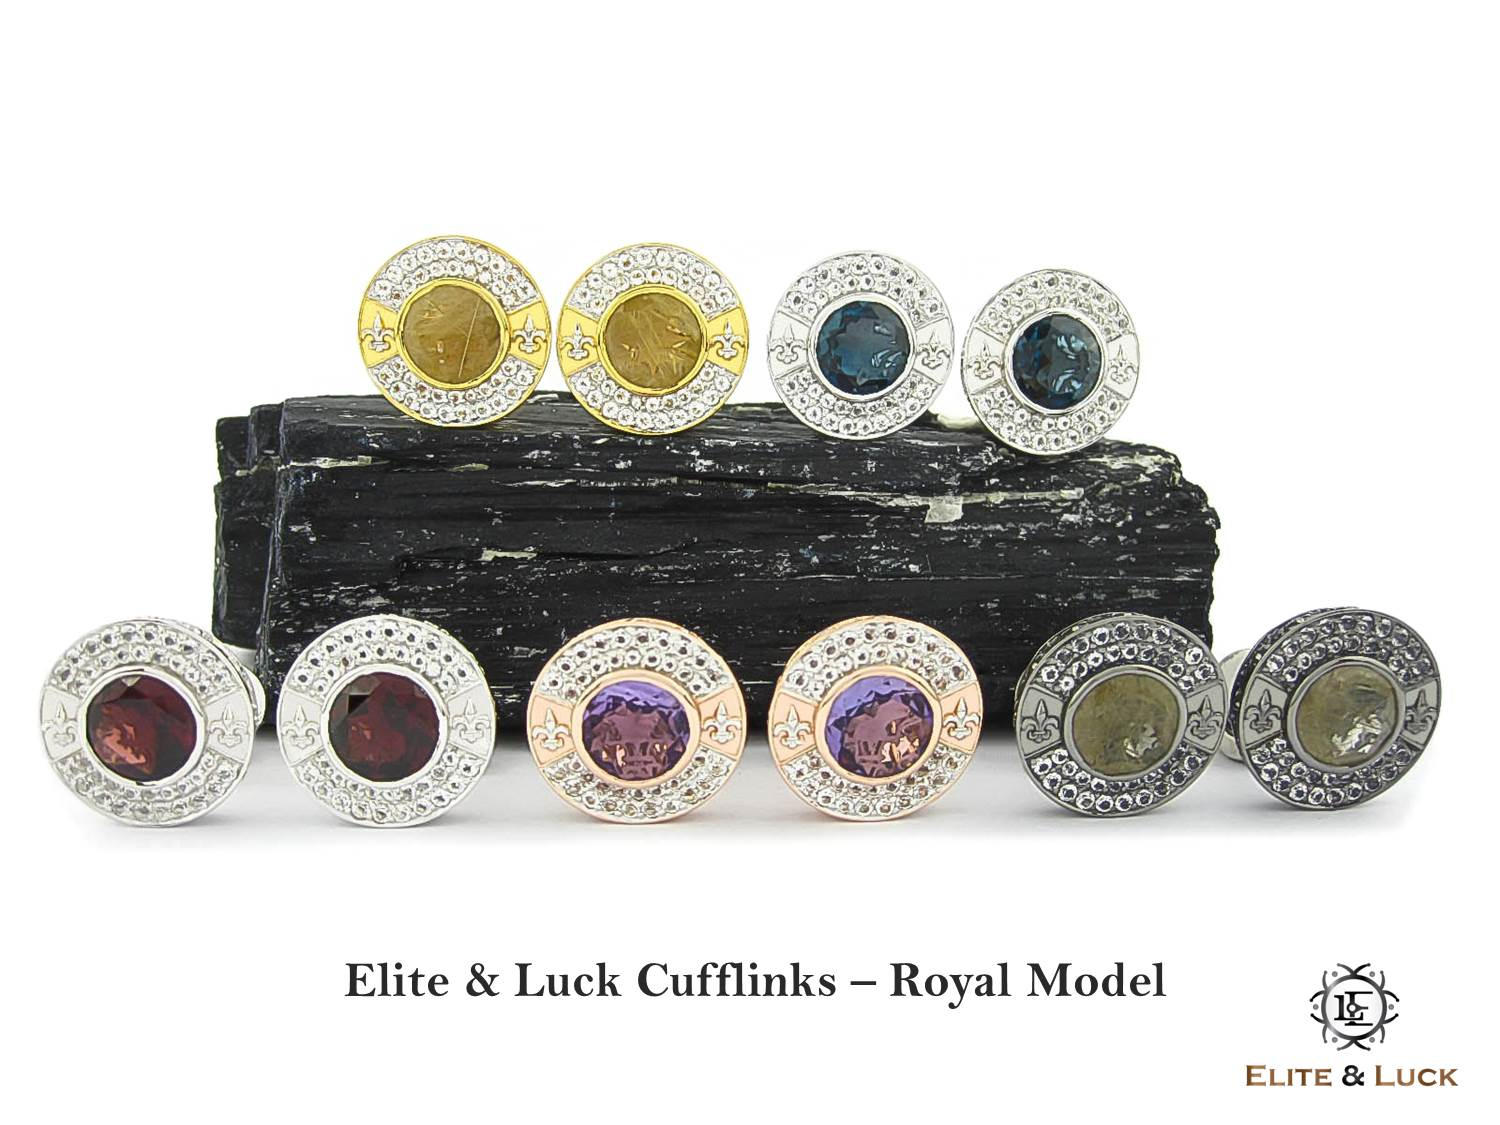 Elite & Luck Gemstone Cufflinks for Men, Royal Model